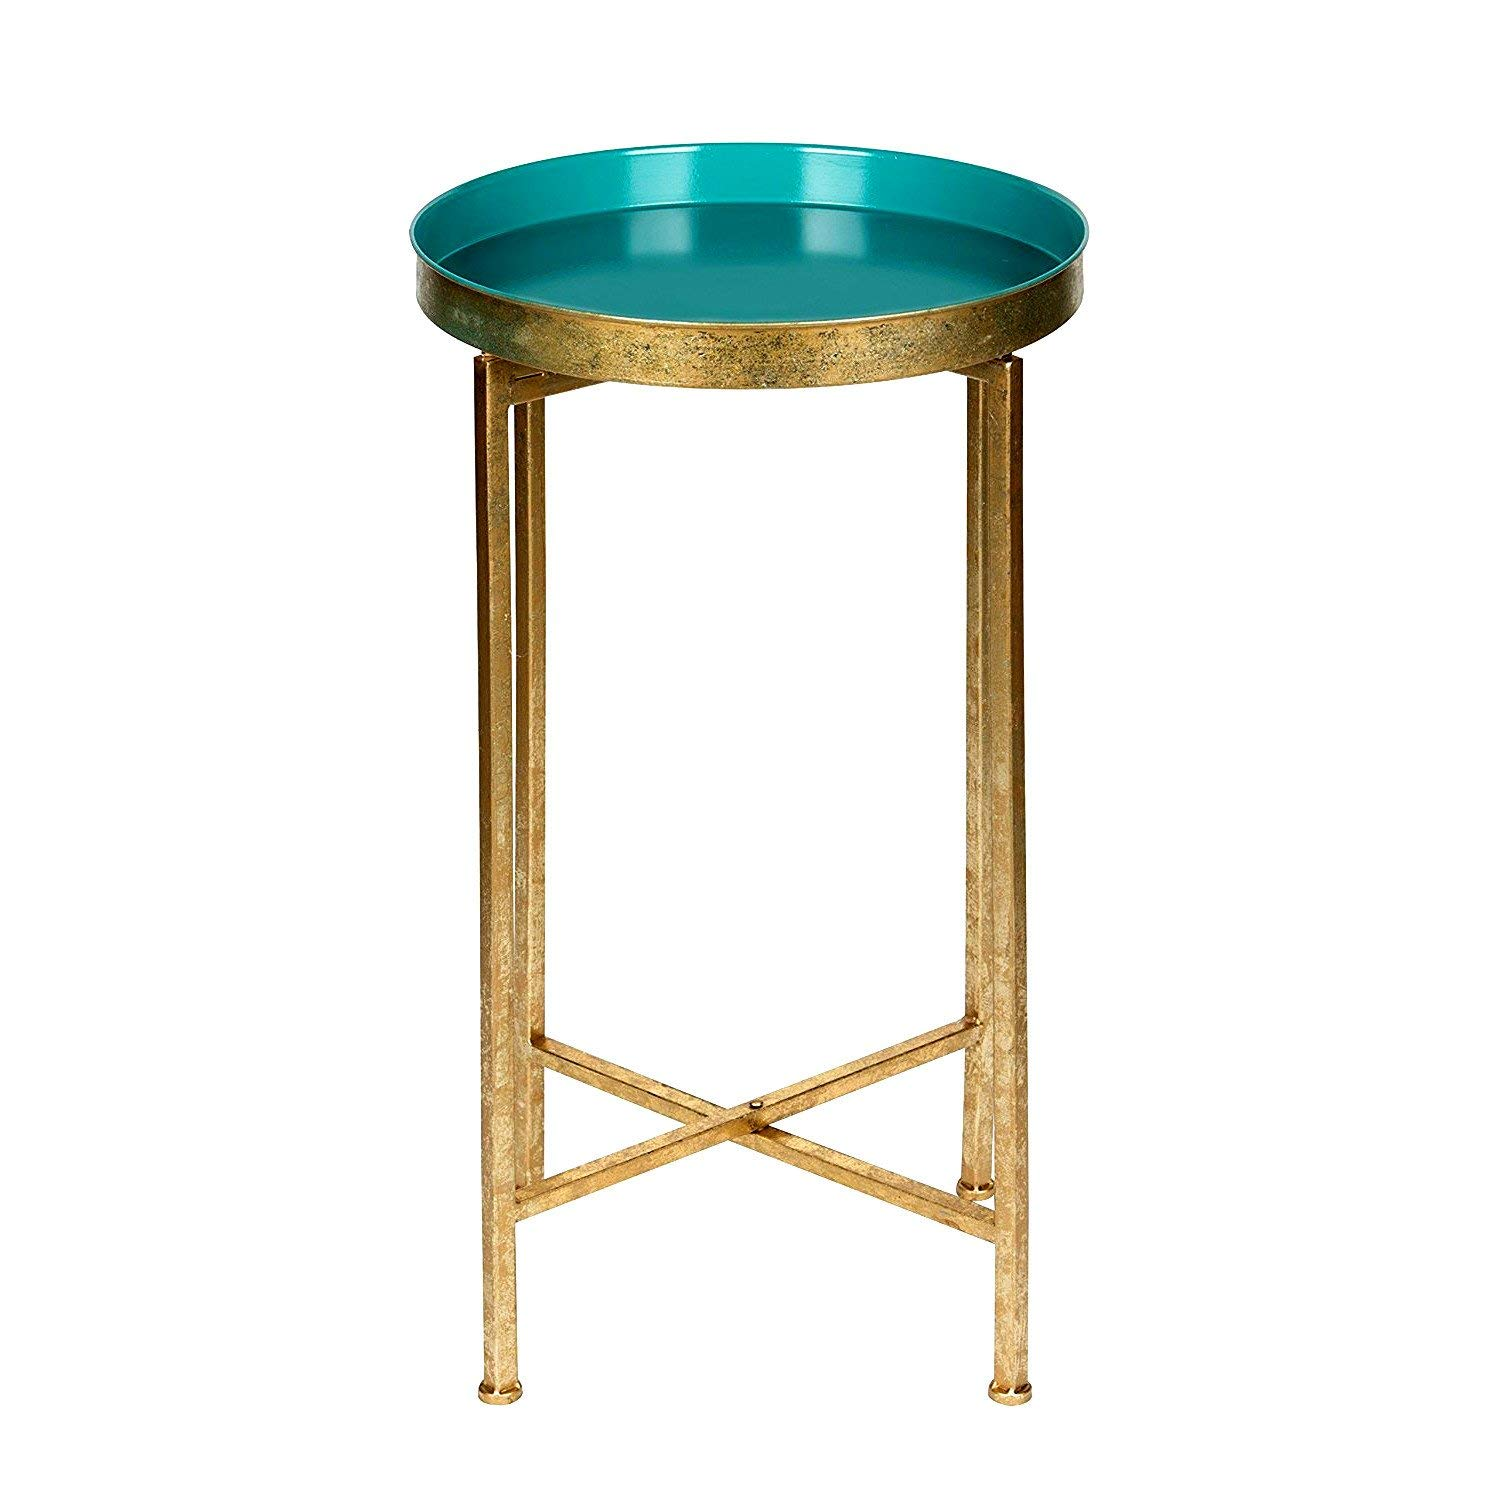 gold tray table find line metal folding accent get quotations end with removable top blue lightweight elegant side vintage drawer pulls red outdoor unfinished wood console two